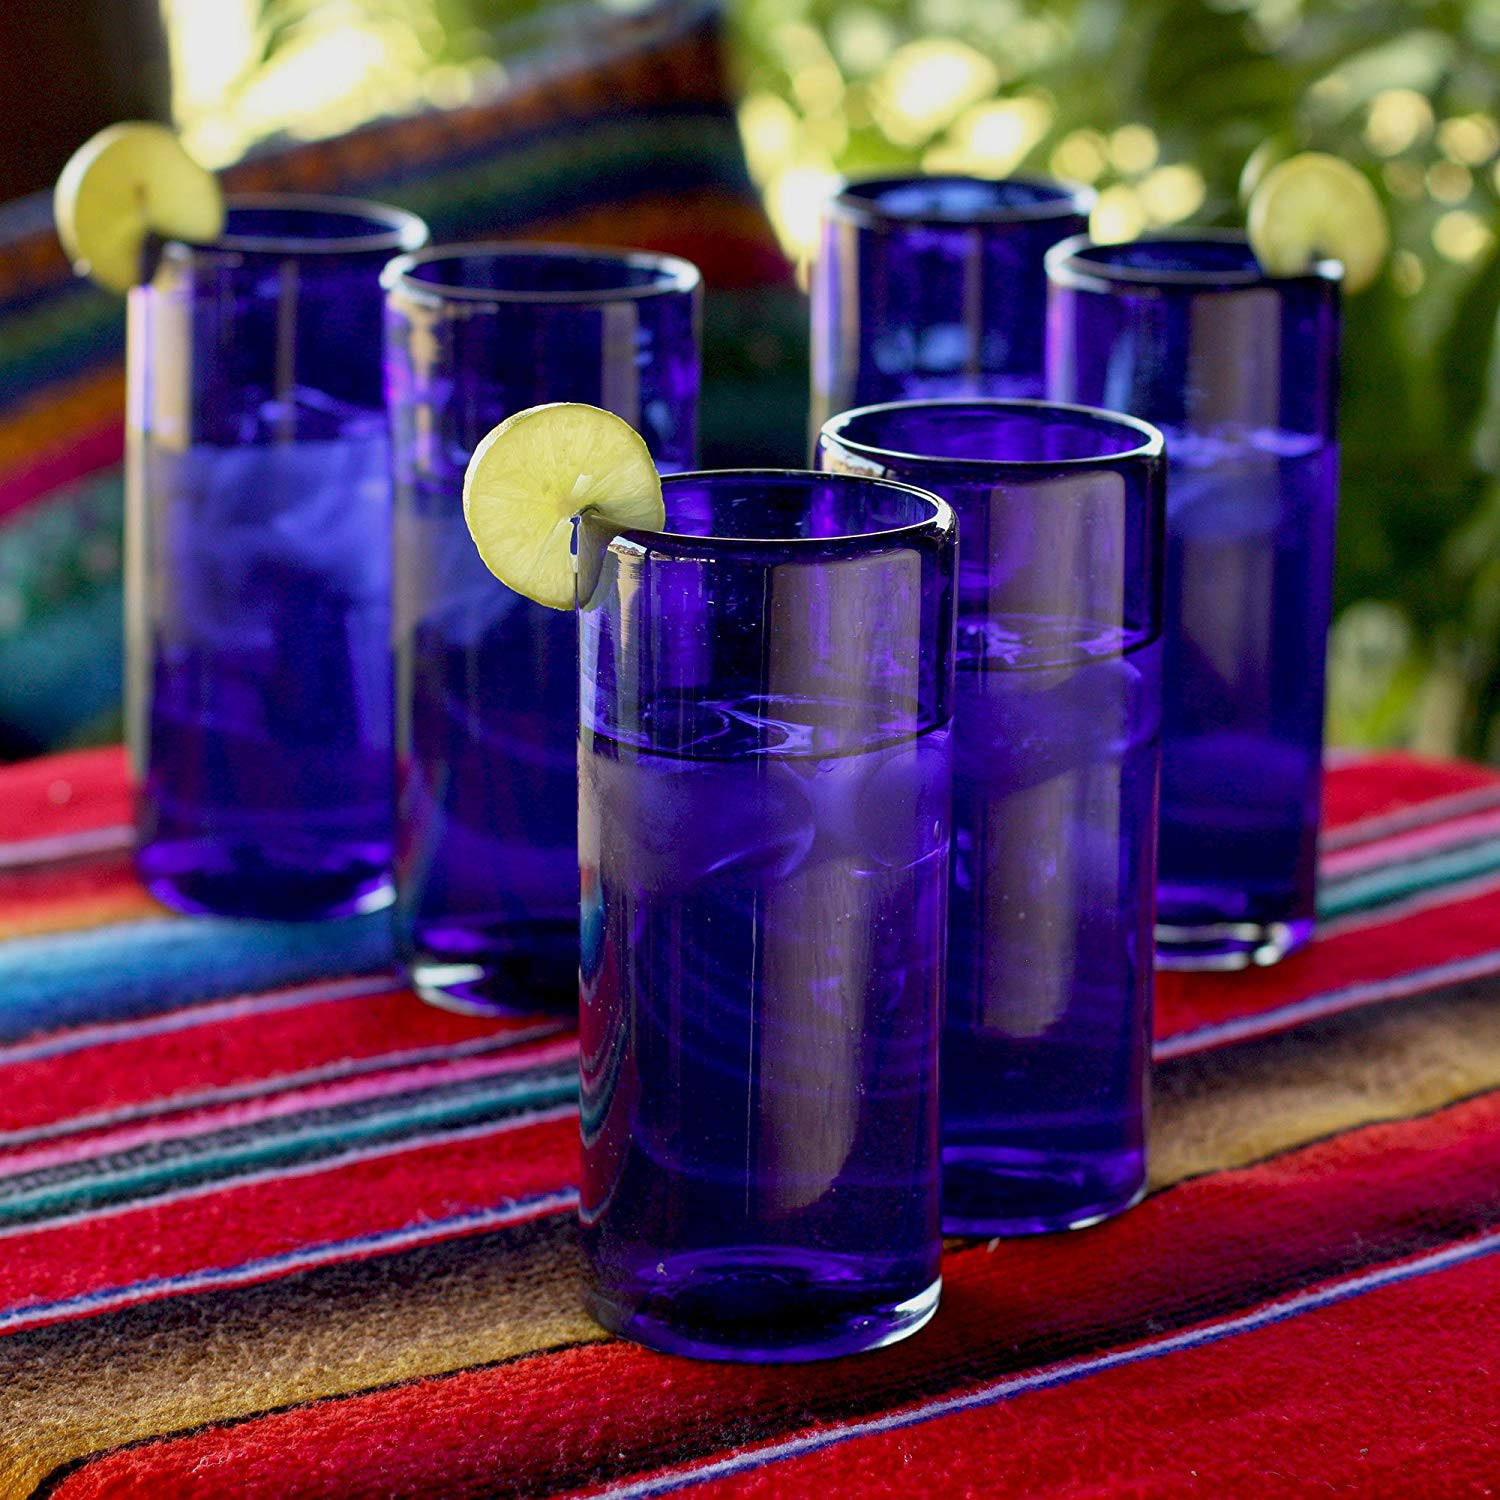 heavy blue glass vase of amazon com novica artisan crafted dark blue recycled glass hand within amazon com novica artisan crafted dark blue recycled glass hand blown cocktail glasses 13 oz pure cobalt set of 6 highball glasses